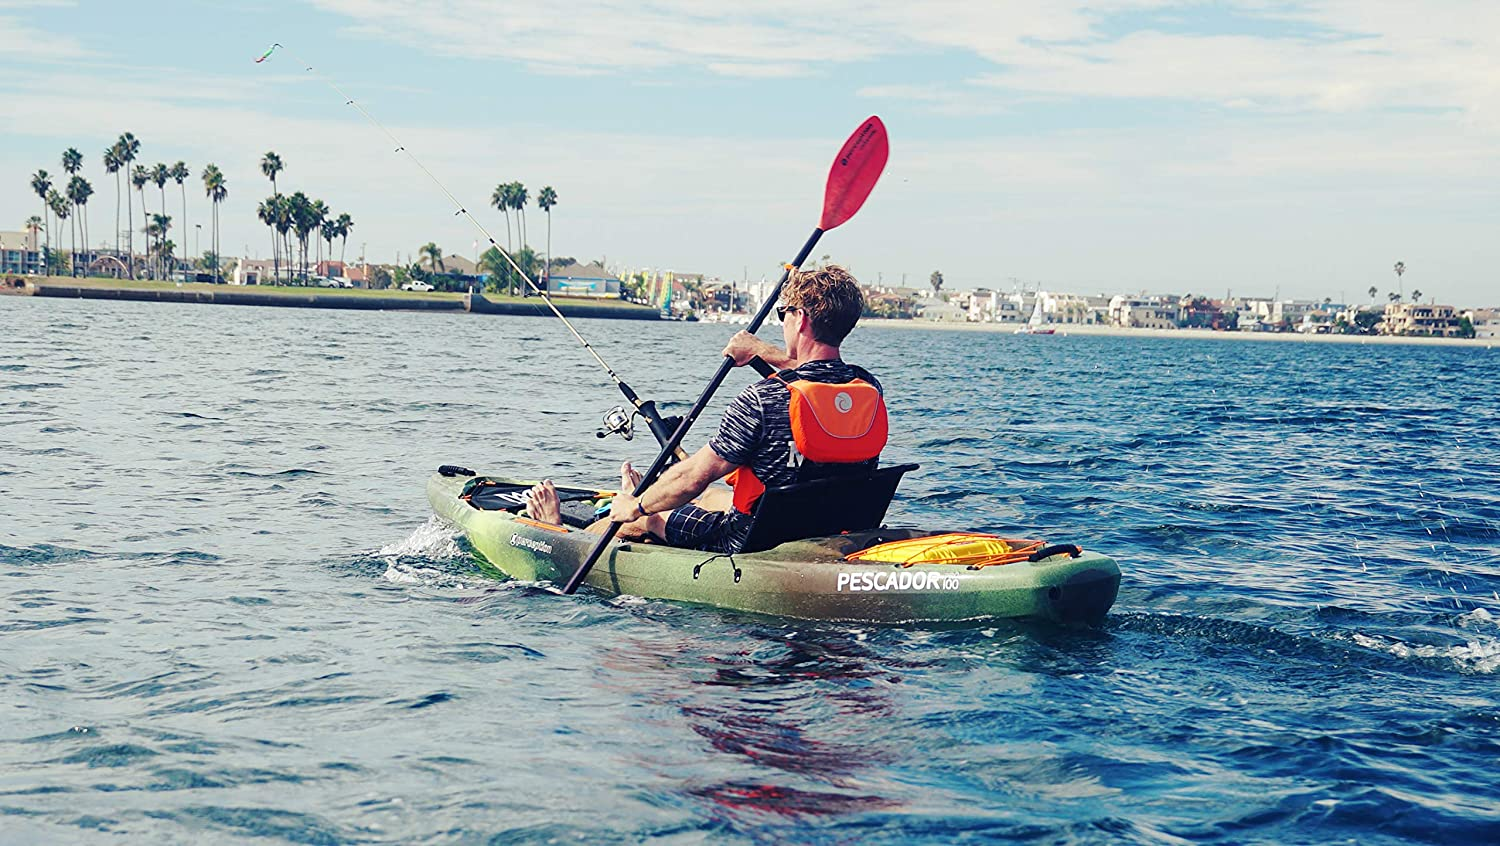 Perception Pescador Pro 10 Fishing Kayak Review